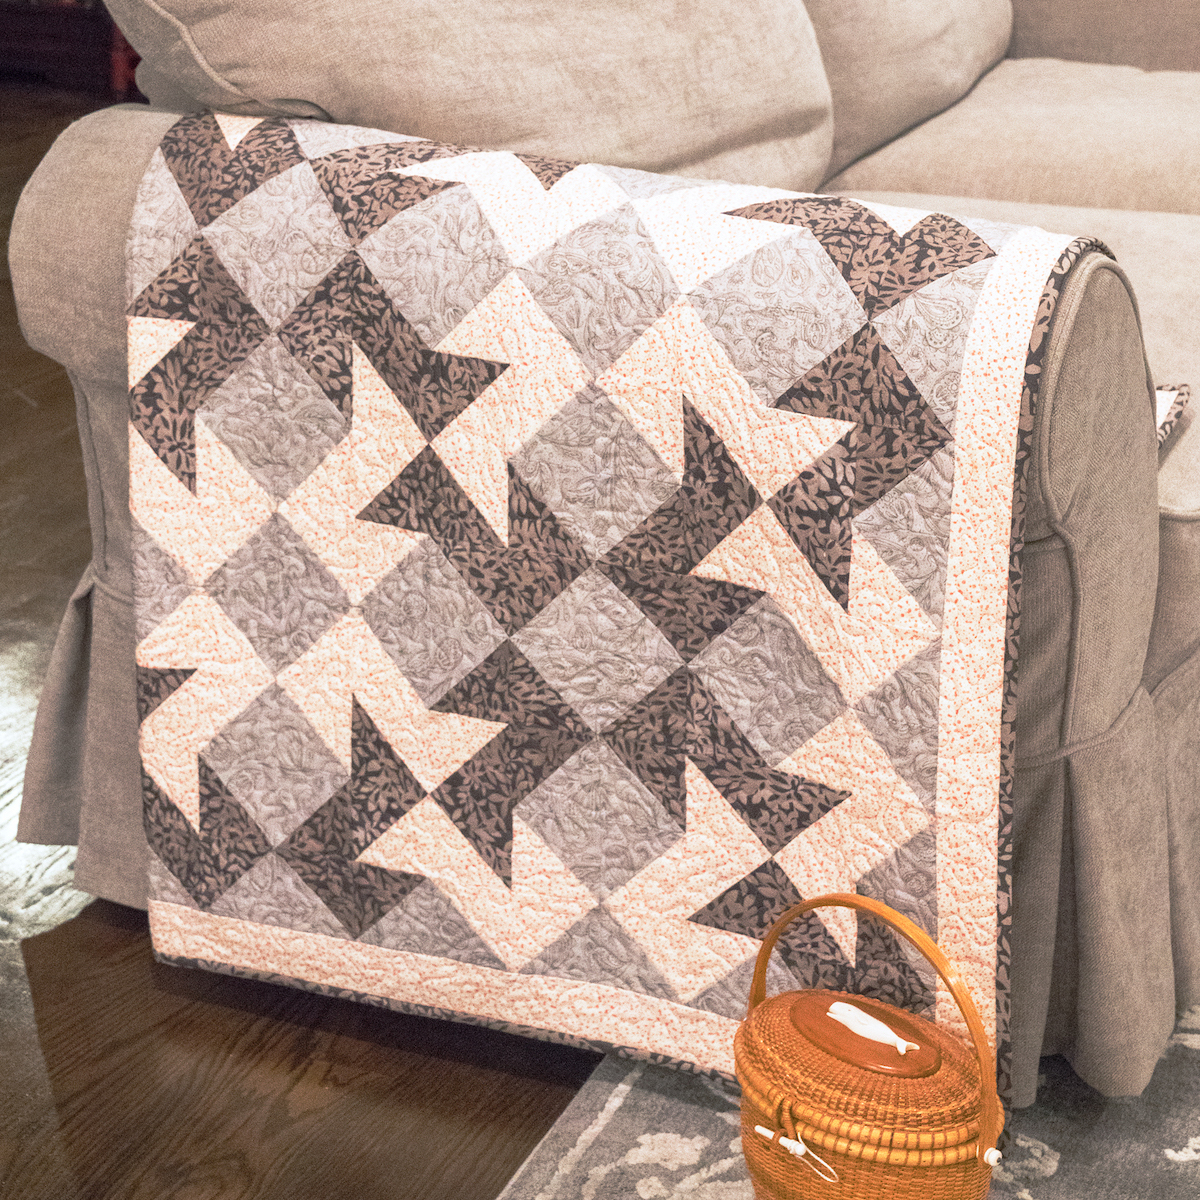 PQ11474-12in-zig-zag-road-quilt-lifestyle-1500x1500-blog